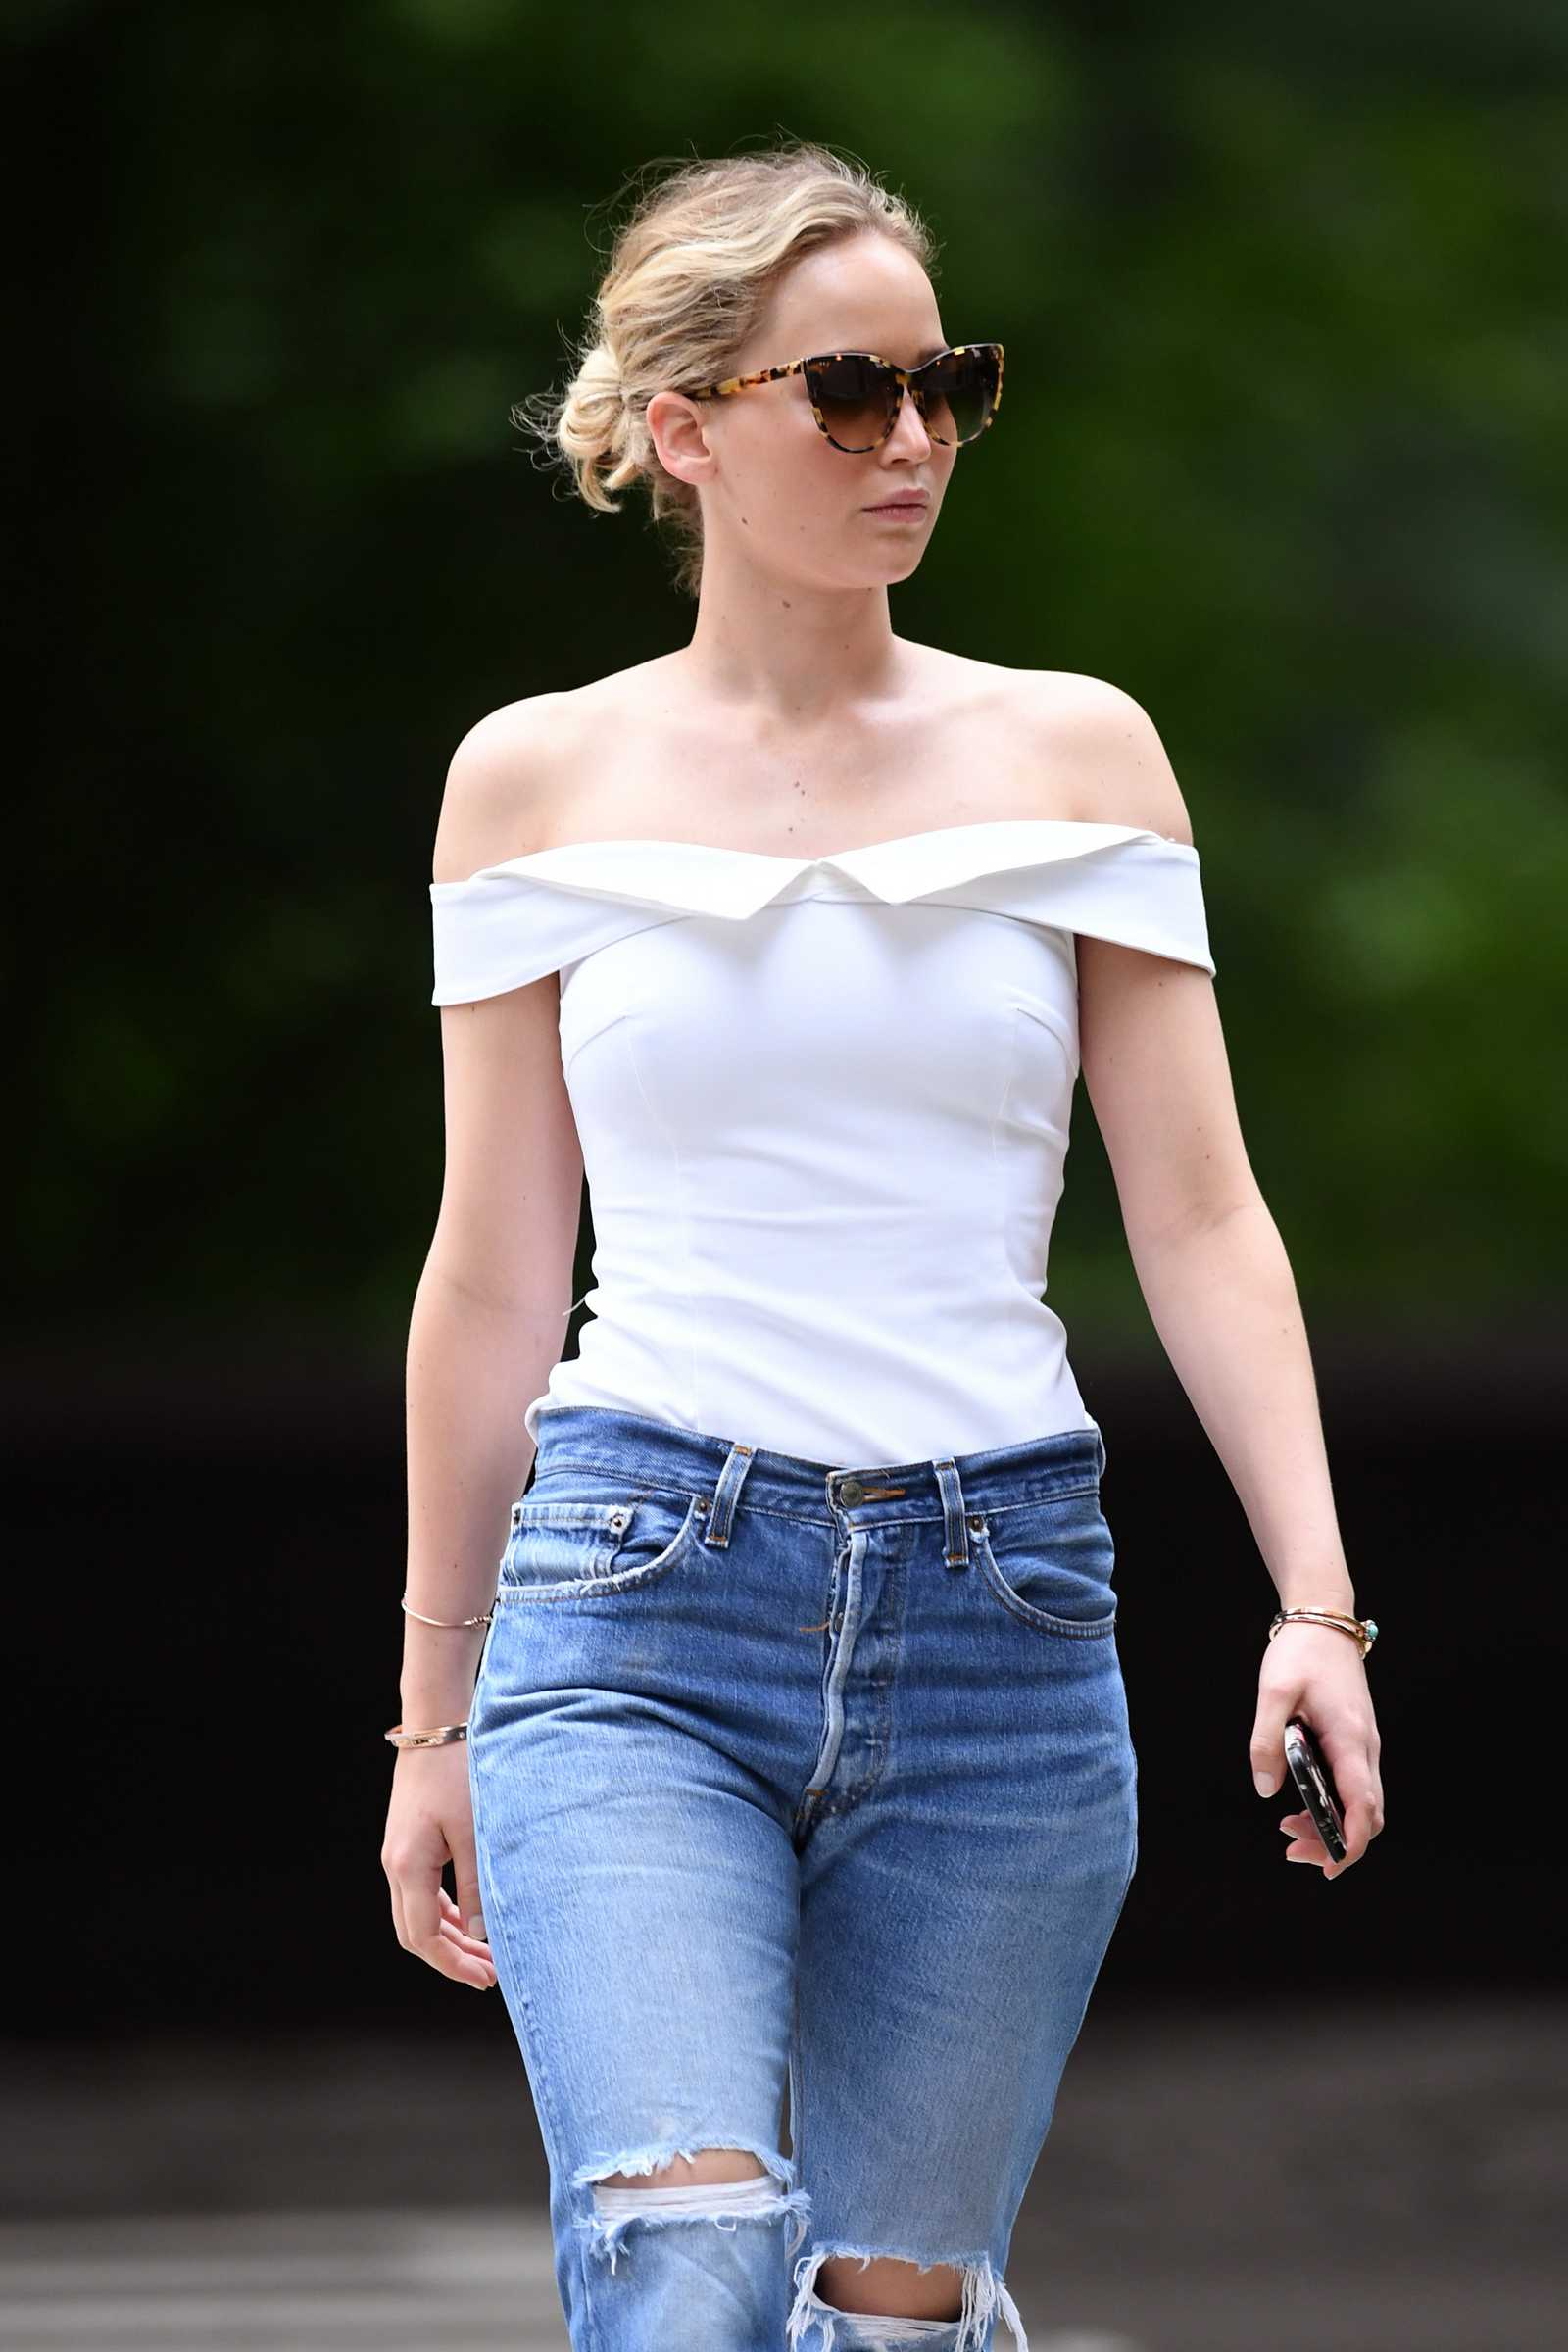 http://jenniferlawrencedaily.com/gallery/albums/userpics/10001/Jennifer_Lawrence_-_Going_for_a_walk_in_Central_Park_on_June_15-16.jpg